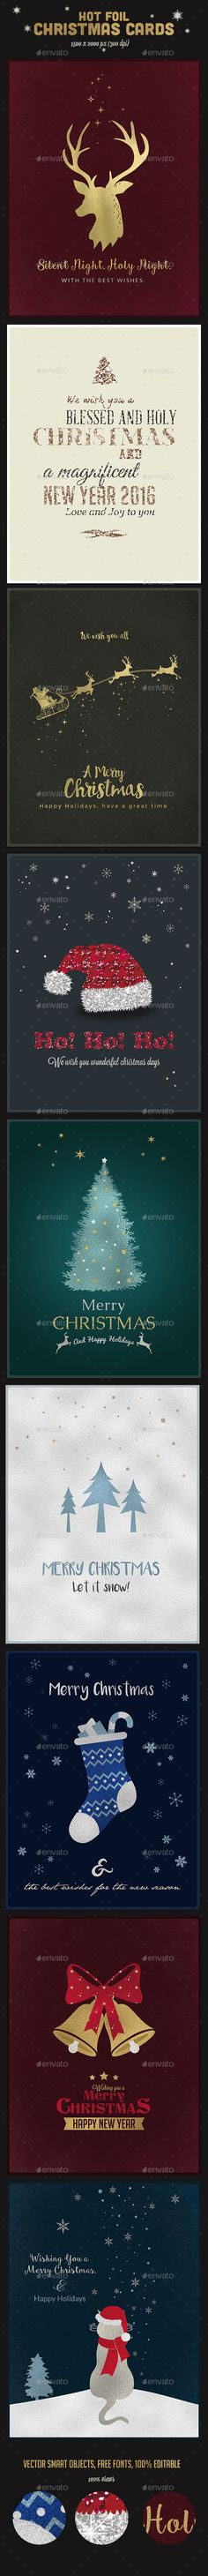 9 Hot Foil Christmas Cards Templates PSD #design Download: http://graphicriver.net/item/9-hot-foil-christmas-cards-psd-vol2/13456035?ref=ksioks